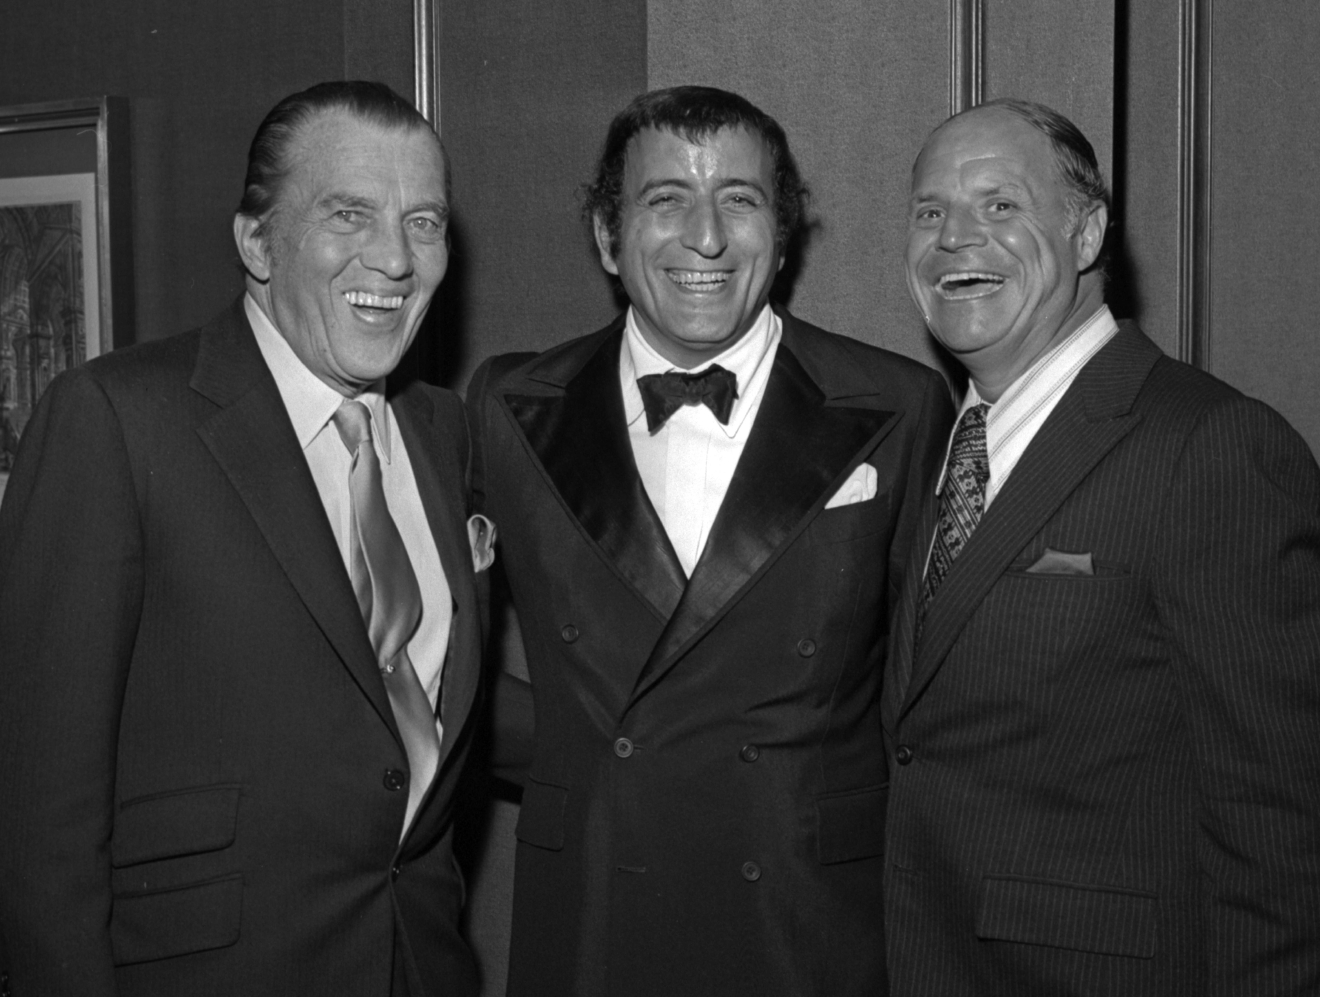 Ed Sullivan, Tony Bennett and Don Rickles at Tony Bennett opening night party at the Riviera on Oct. 26, 1971. [Las Vegas News Bureau file photo]